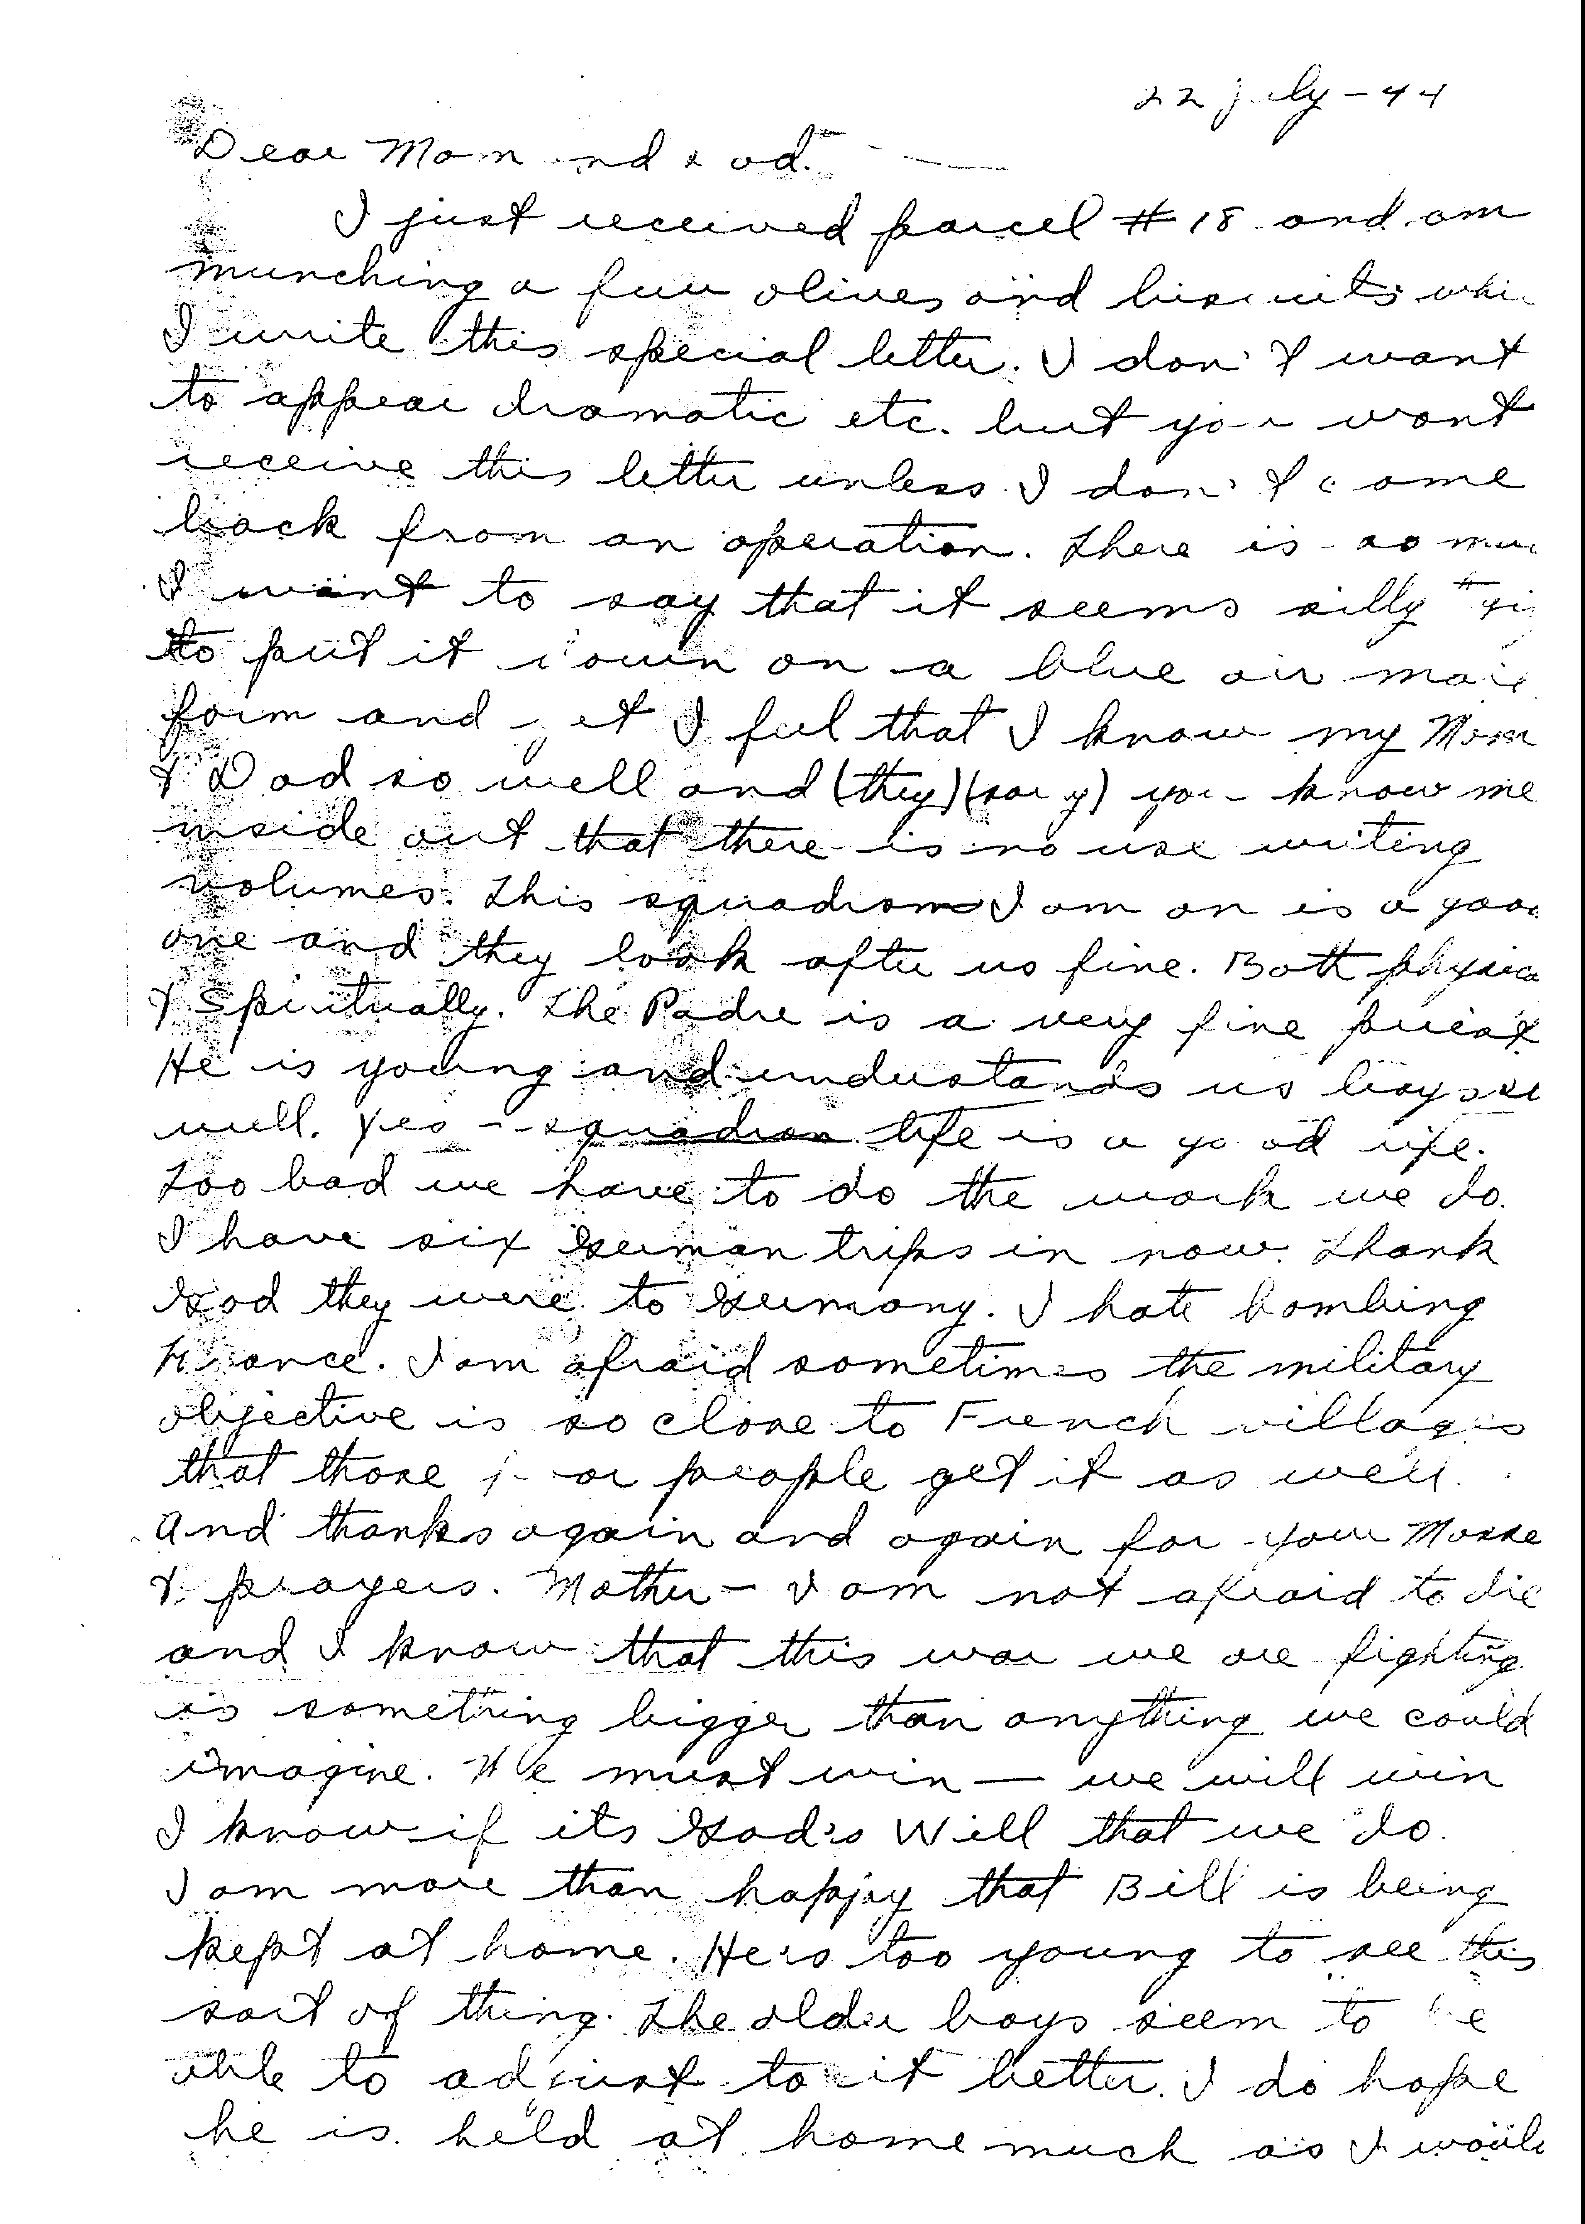 Letter (Page 1) – Paul's last letter to his family.